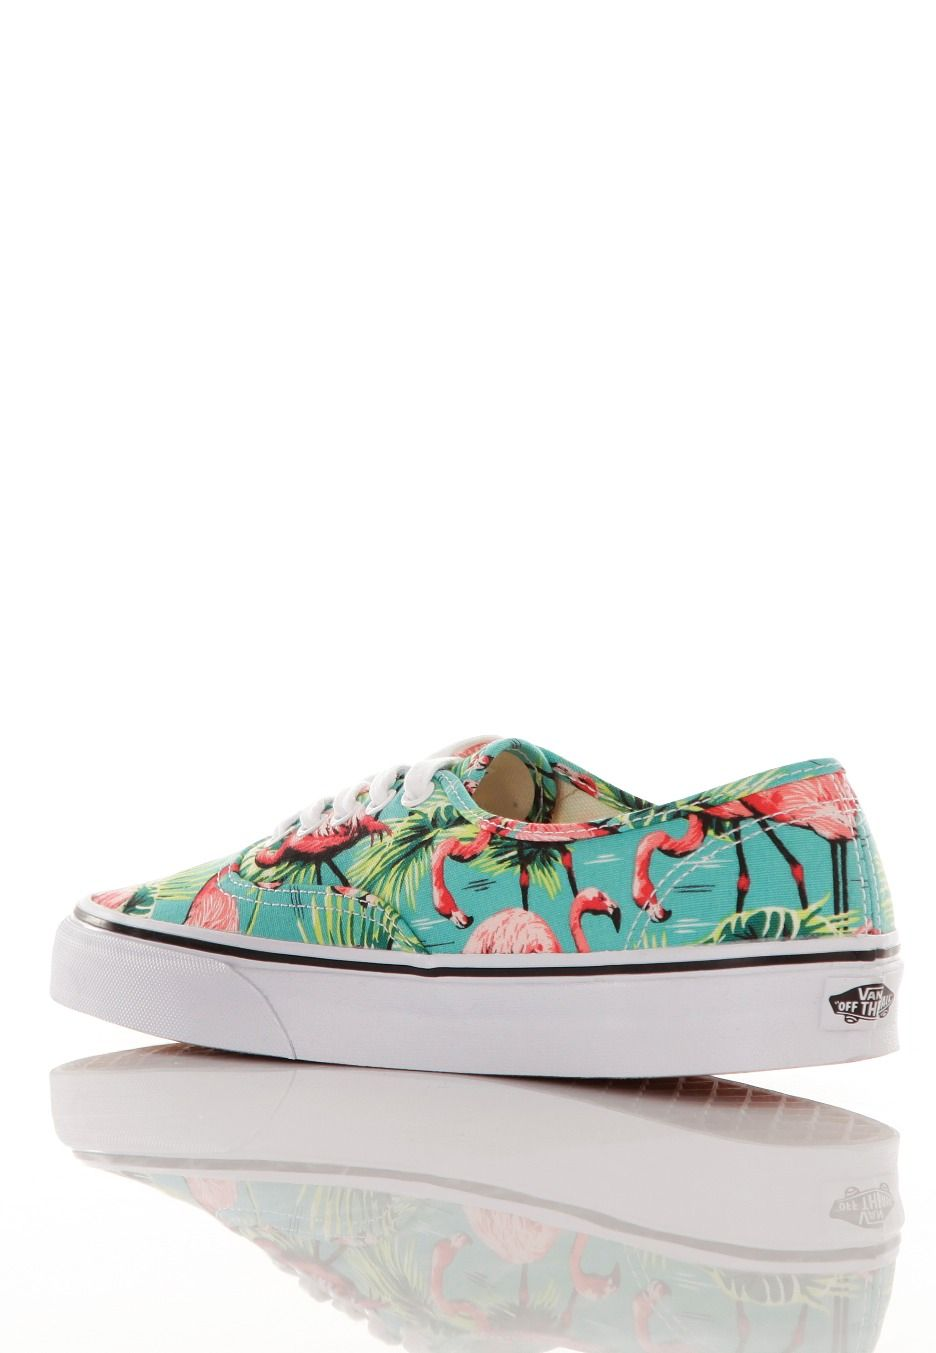 Mens Grey Vans Shoes | Purple Galaxy Vans | Flamingo Vans